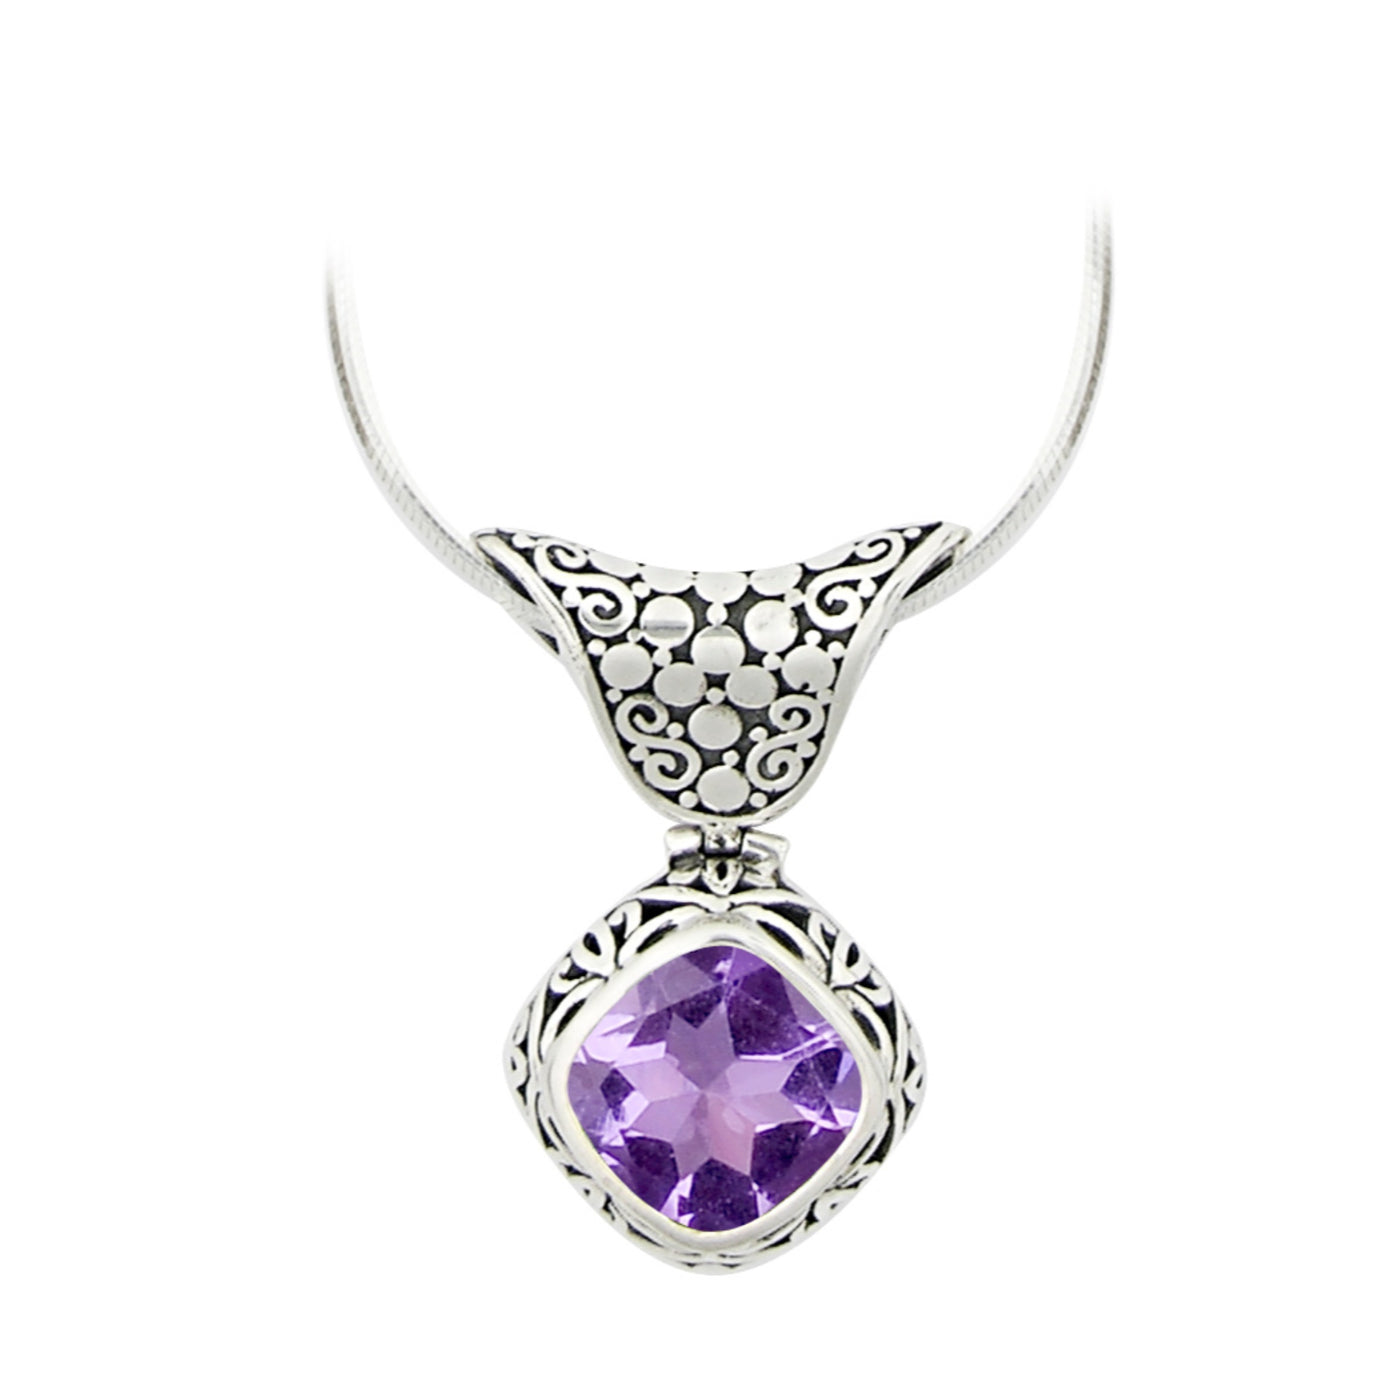 JD N54143 AMETHYST DIAMOND SHAPED NECKLACE